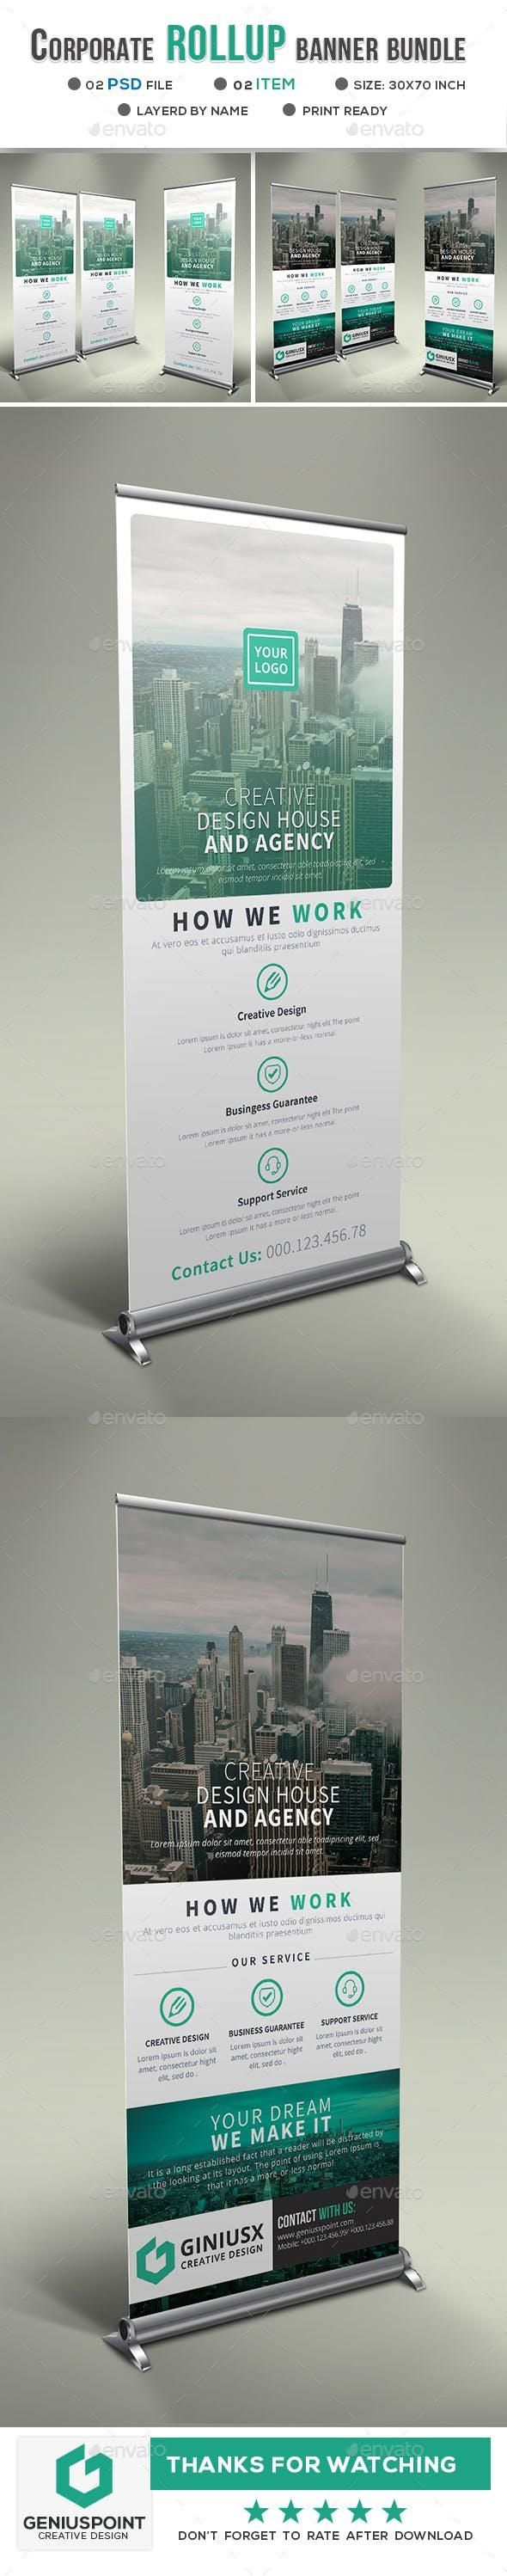 Corporate Roll Up Banner Bundle for $9 #advertisement #graphic #marketing #Signa...